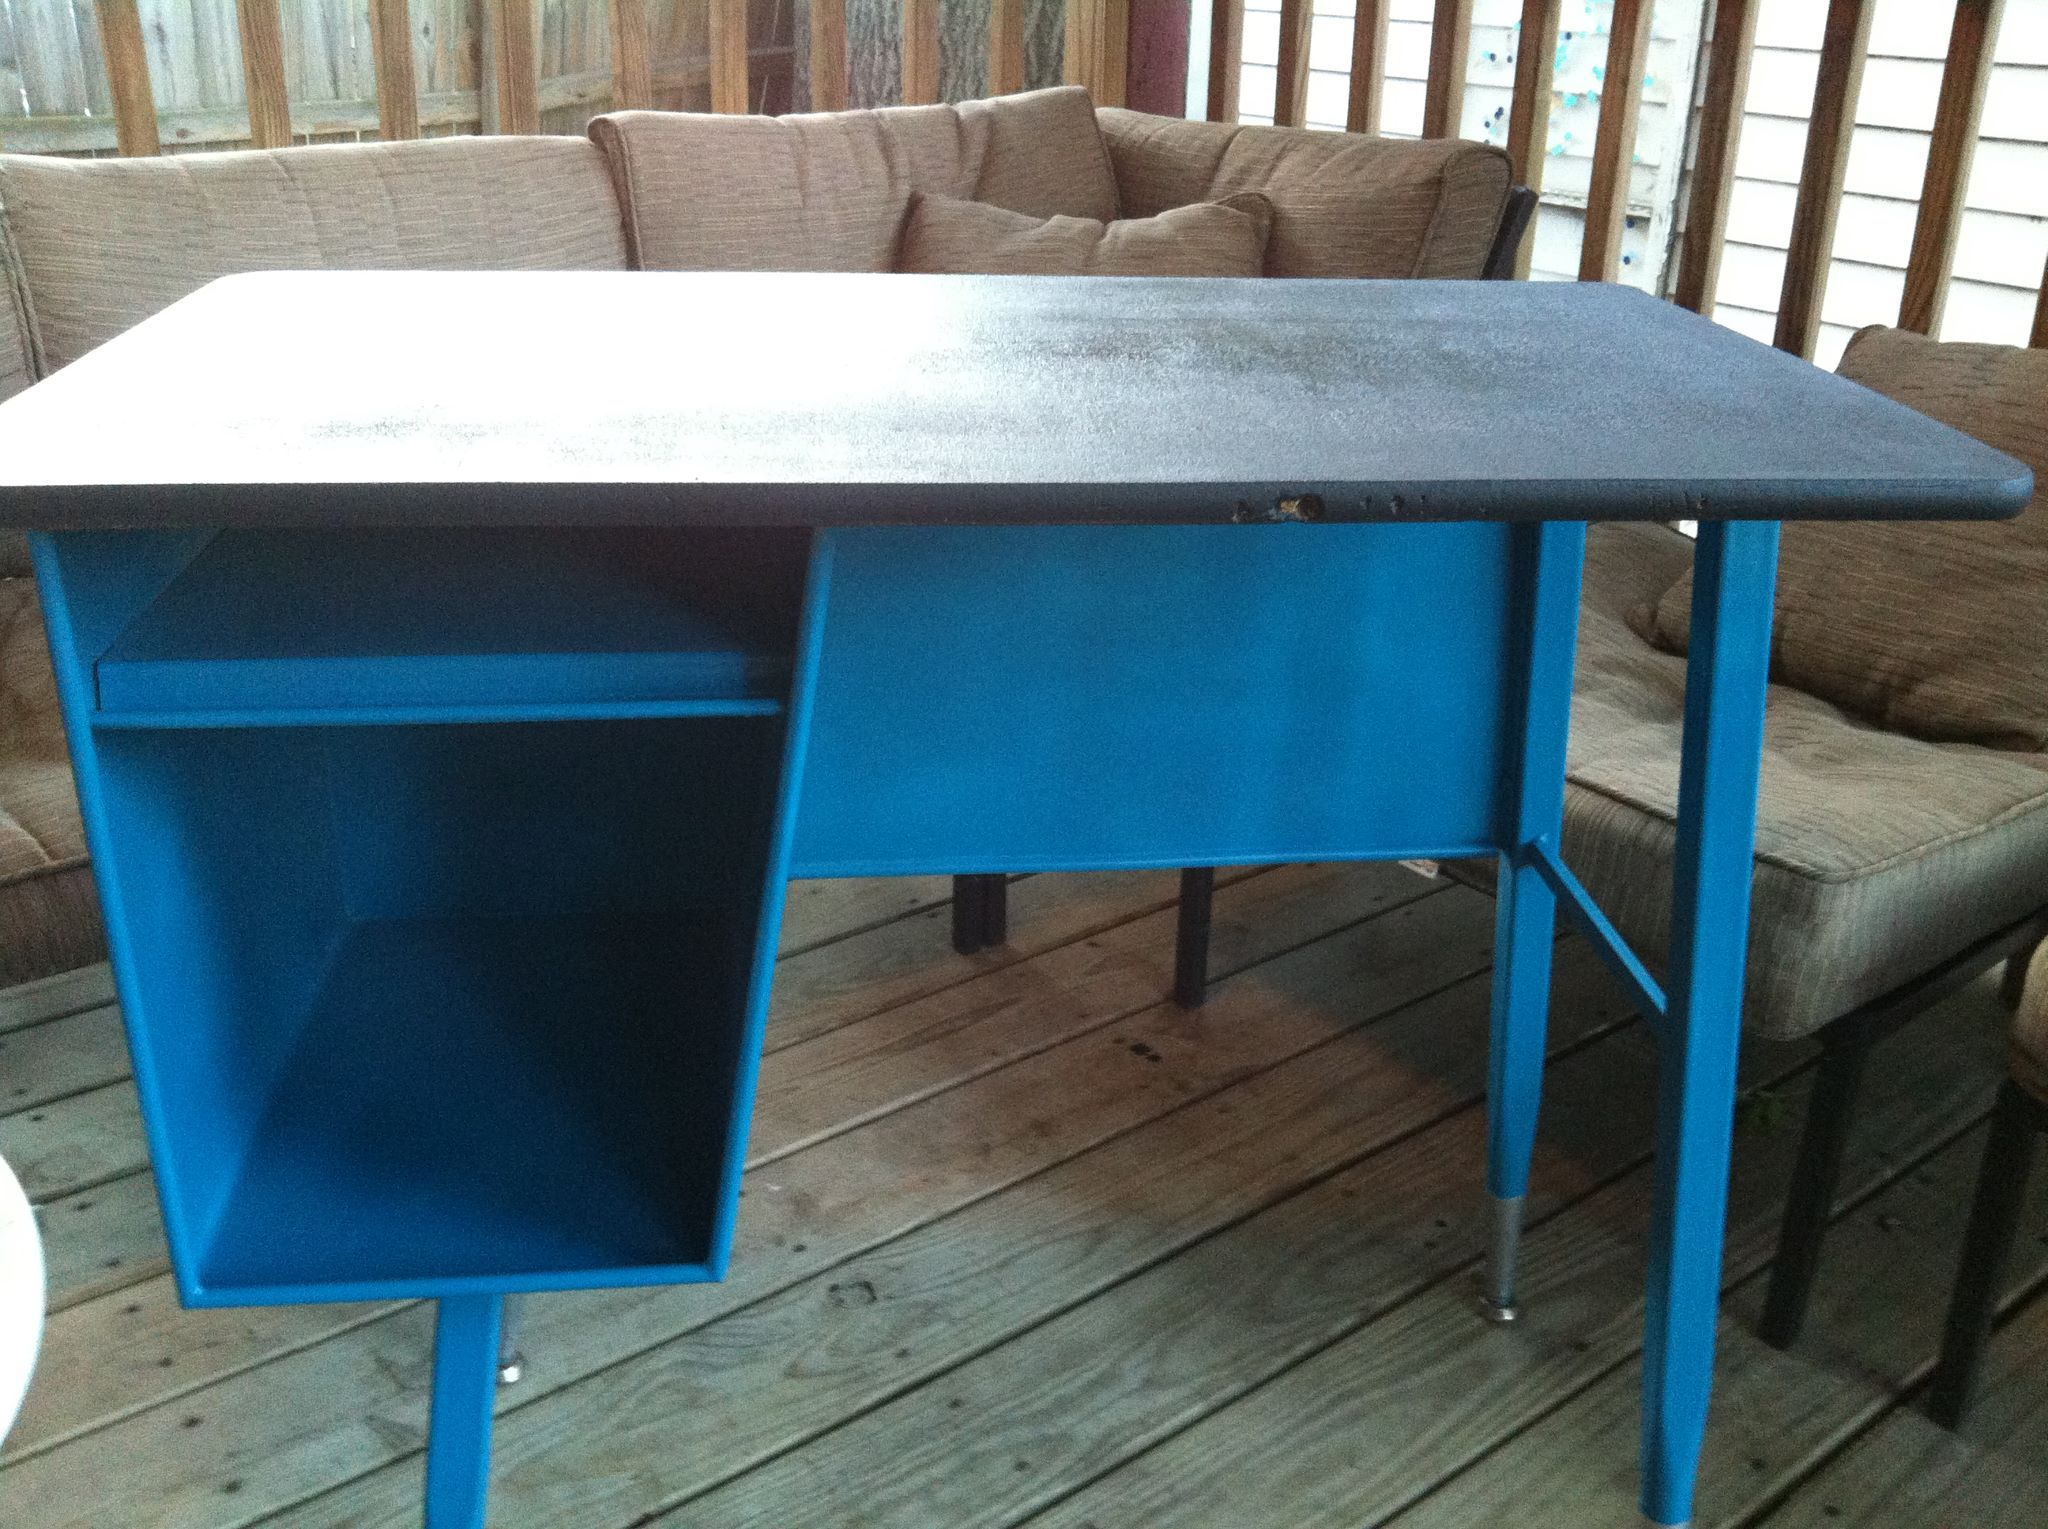 Antique school desk painted peacock blue with a chalkboard